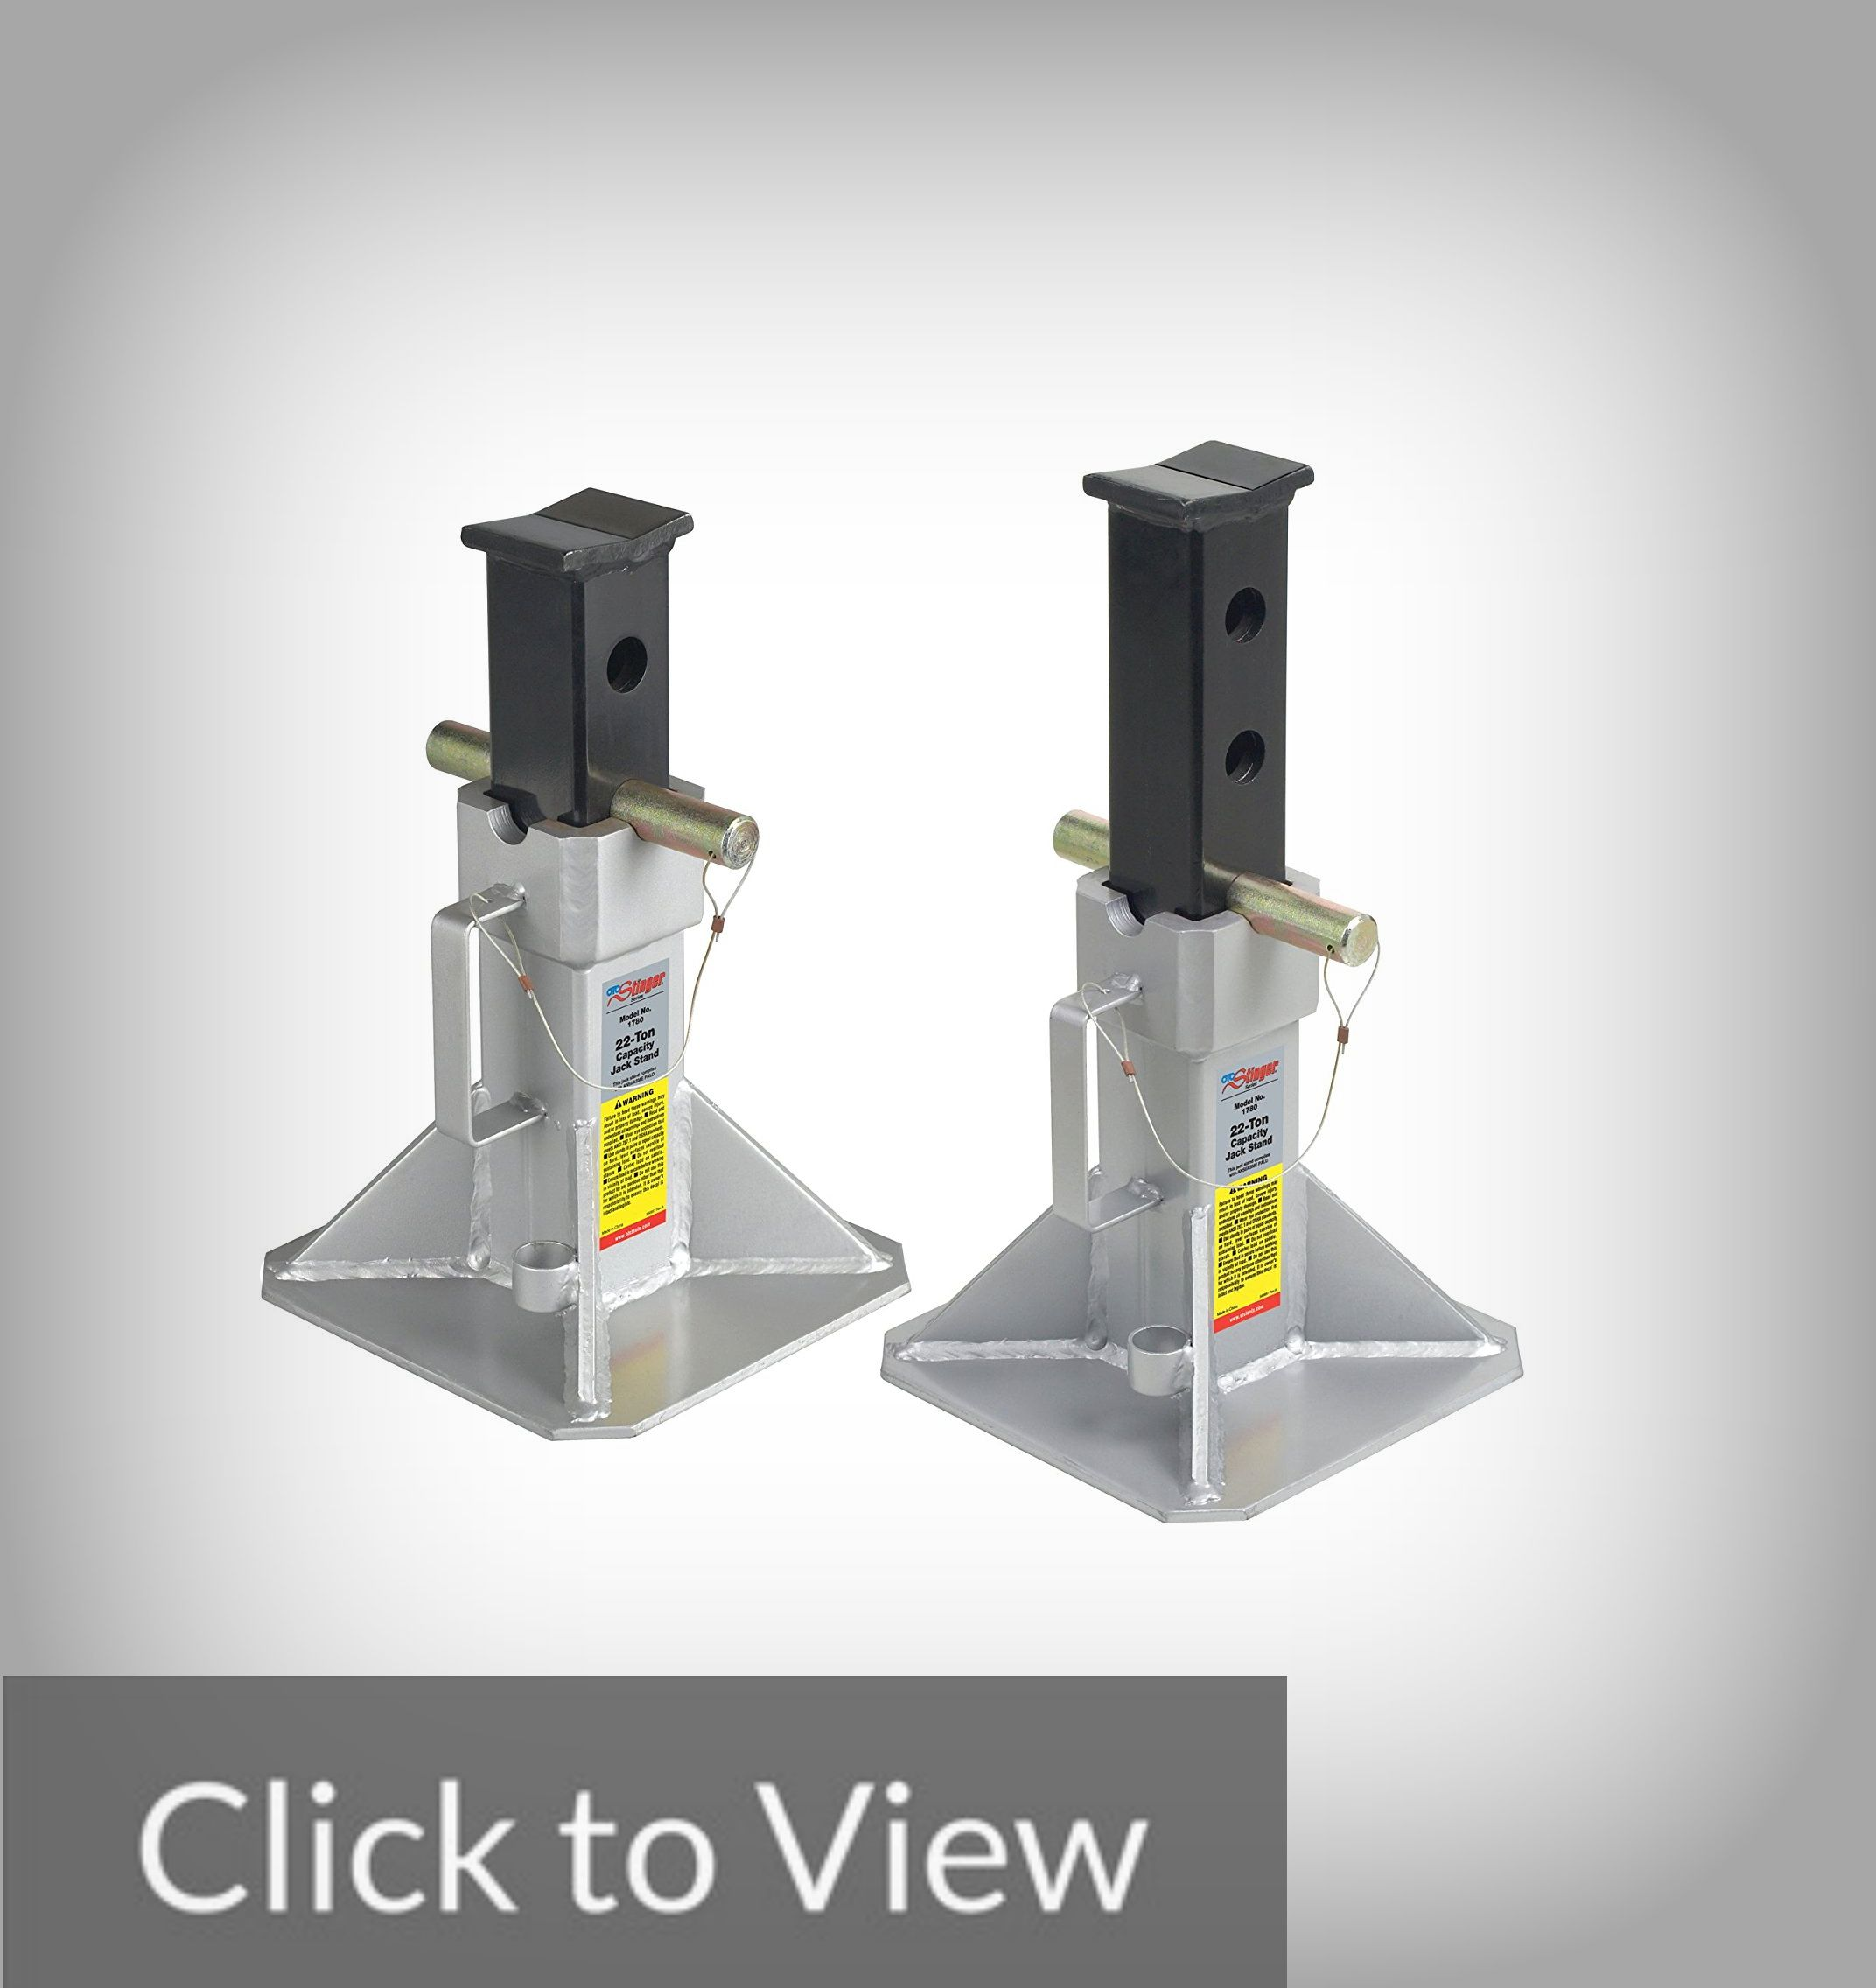 Otc 1780 Jack Stand We Ve Discovered Jack Stand Looking Like Duplicates The Otc 1780 Jack Stand Is Designed Disti Jack Stands Automotive Accessories Car Jack